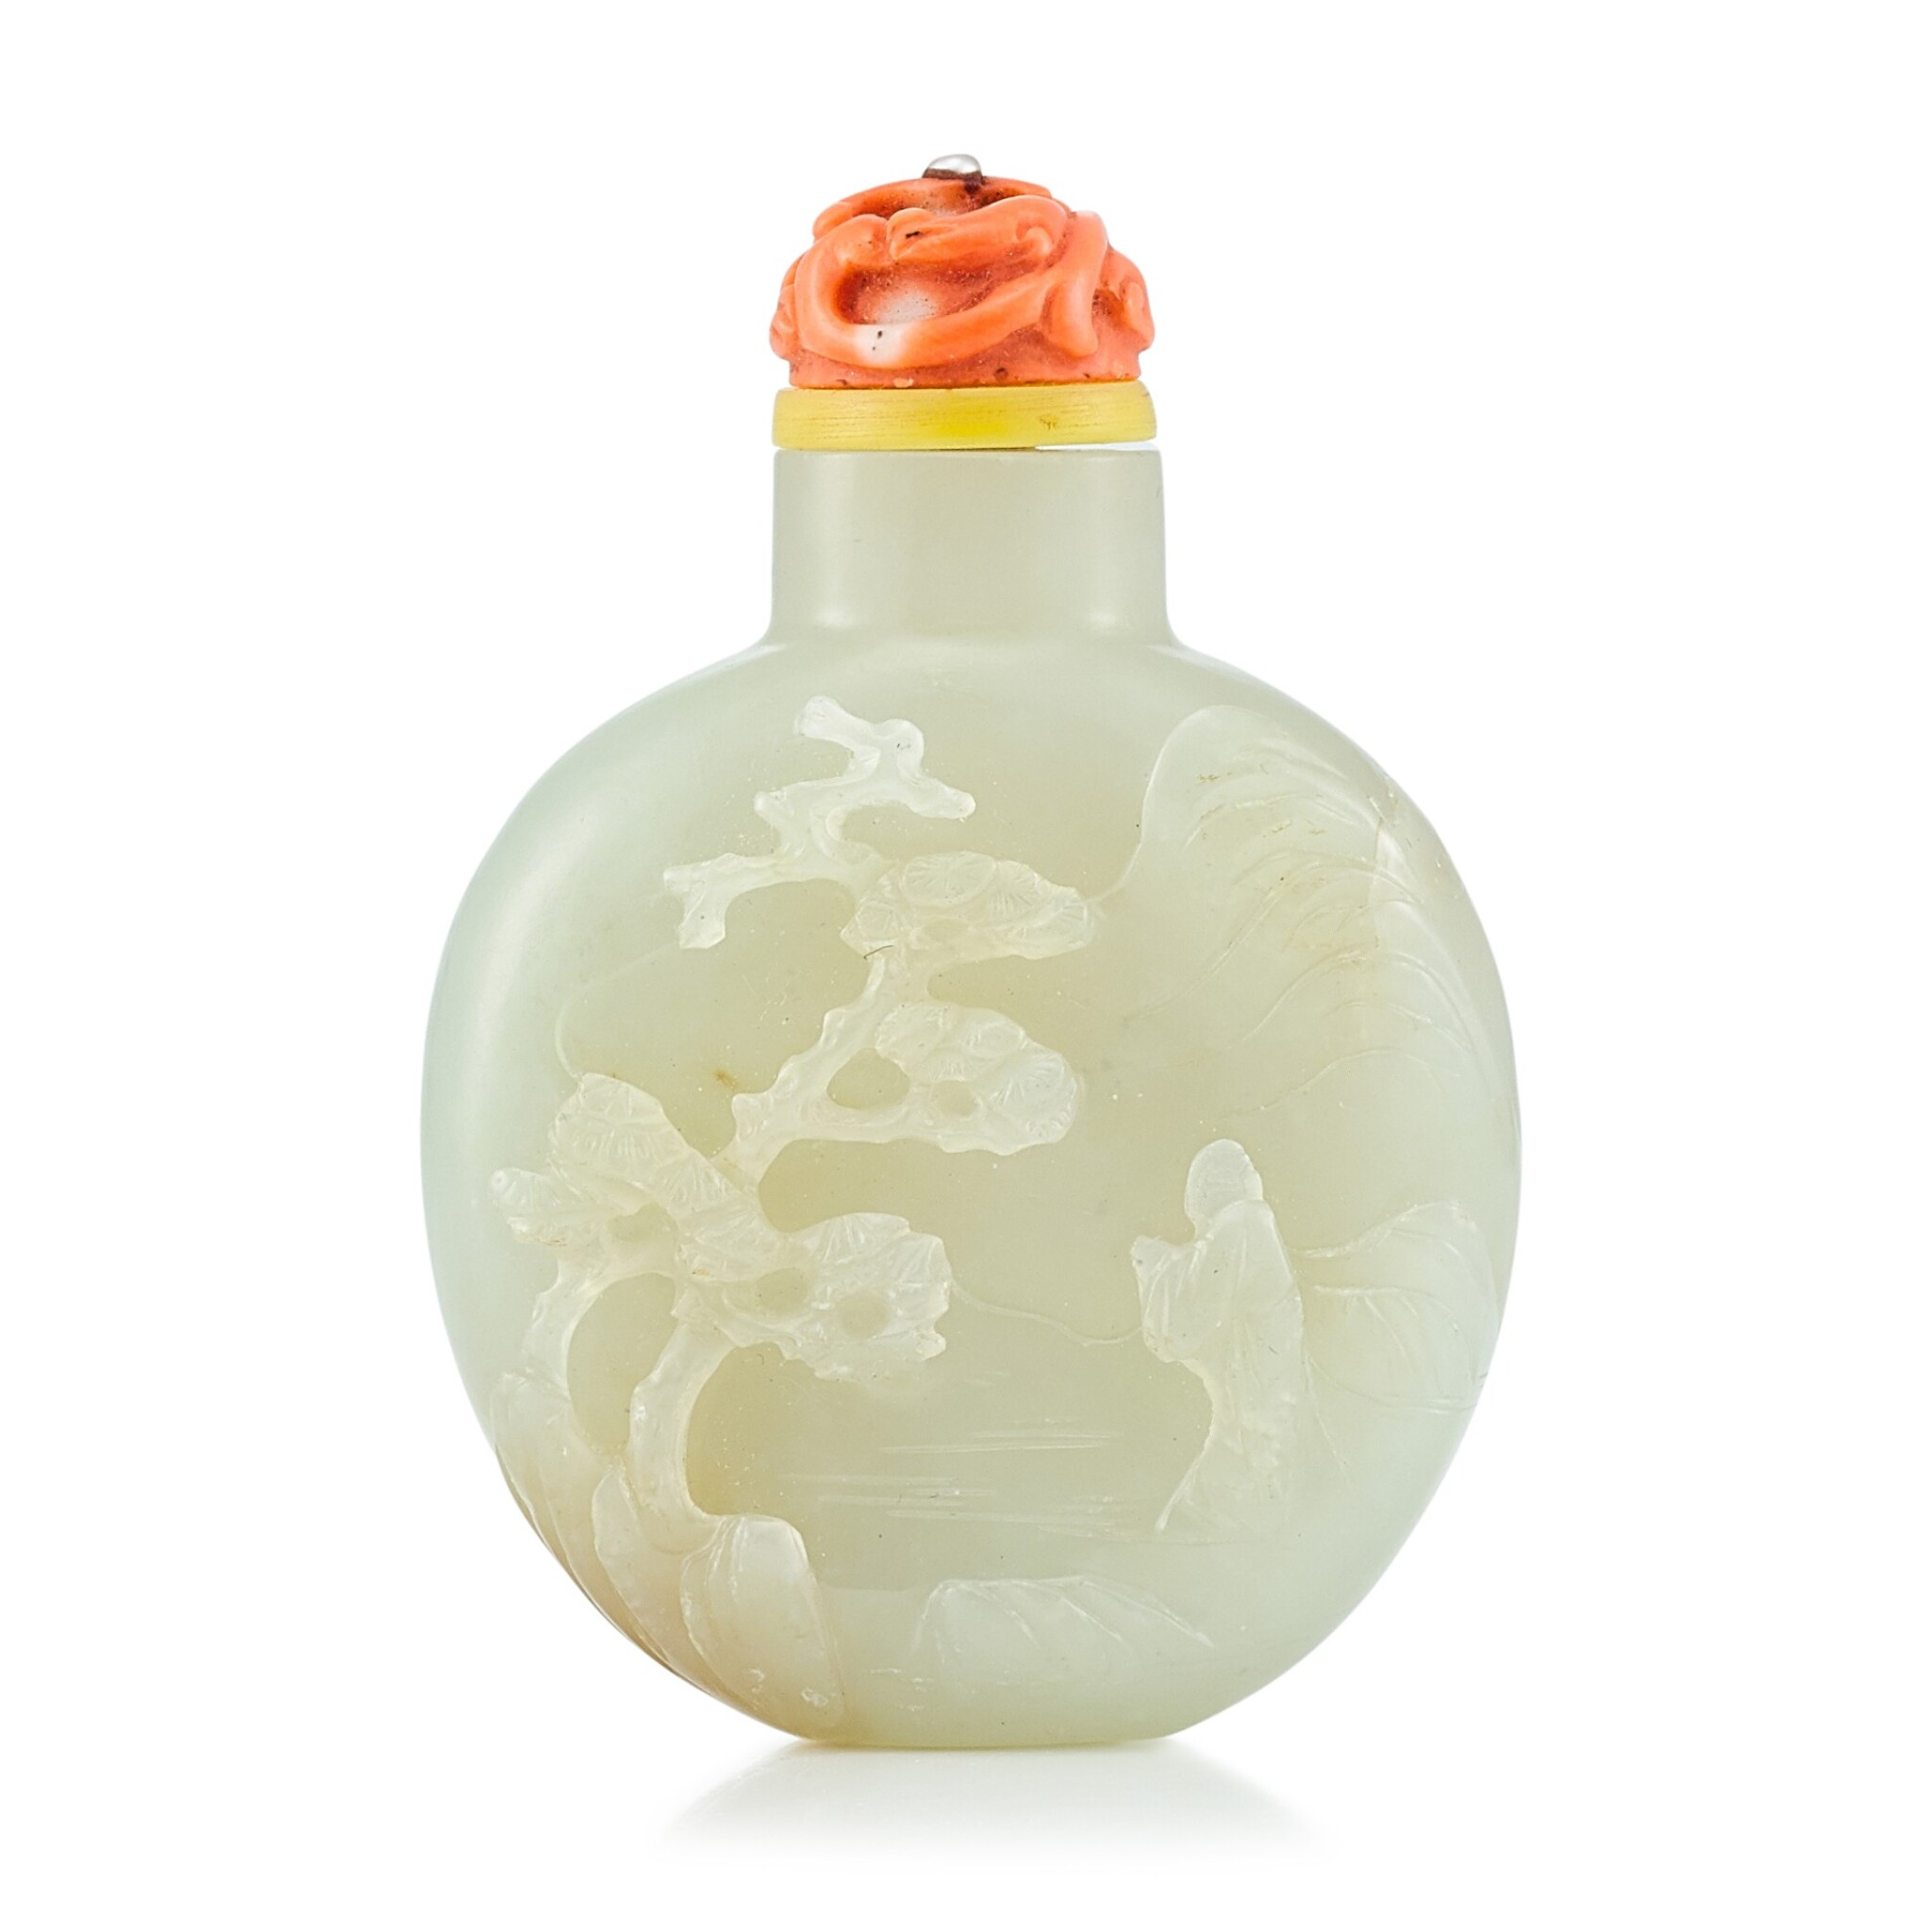 View full screen - View 1 of Lot 3057. A Pale Green Jade 'Scholar' Snuff Bottle Qing Dynasty, 18th - 19th Century | 清十八至十九世紀 青白玉高士圖鼻煙壺.